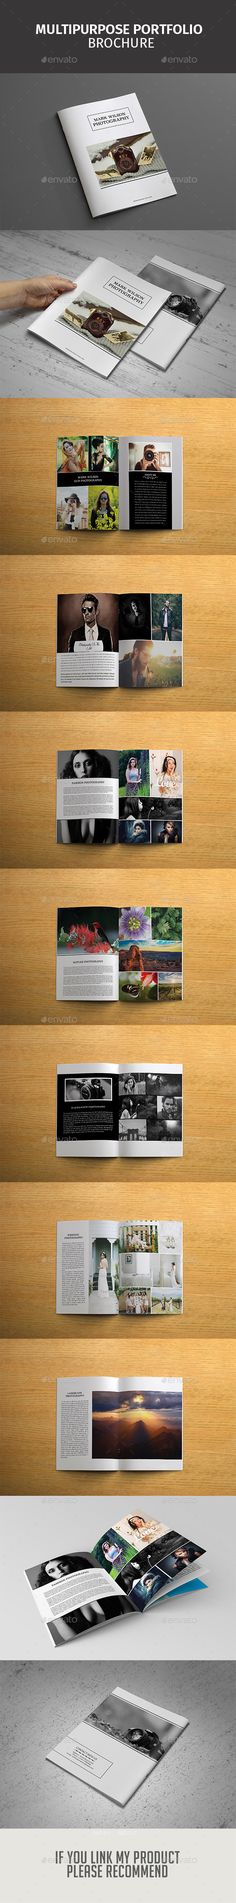 Clean Landscape Company Brochure Template, Company and Landscapes - hotel brochure template